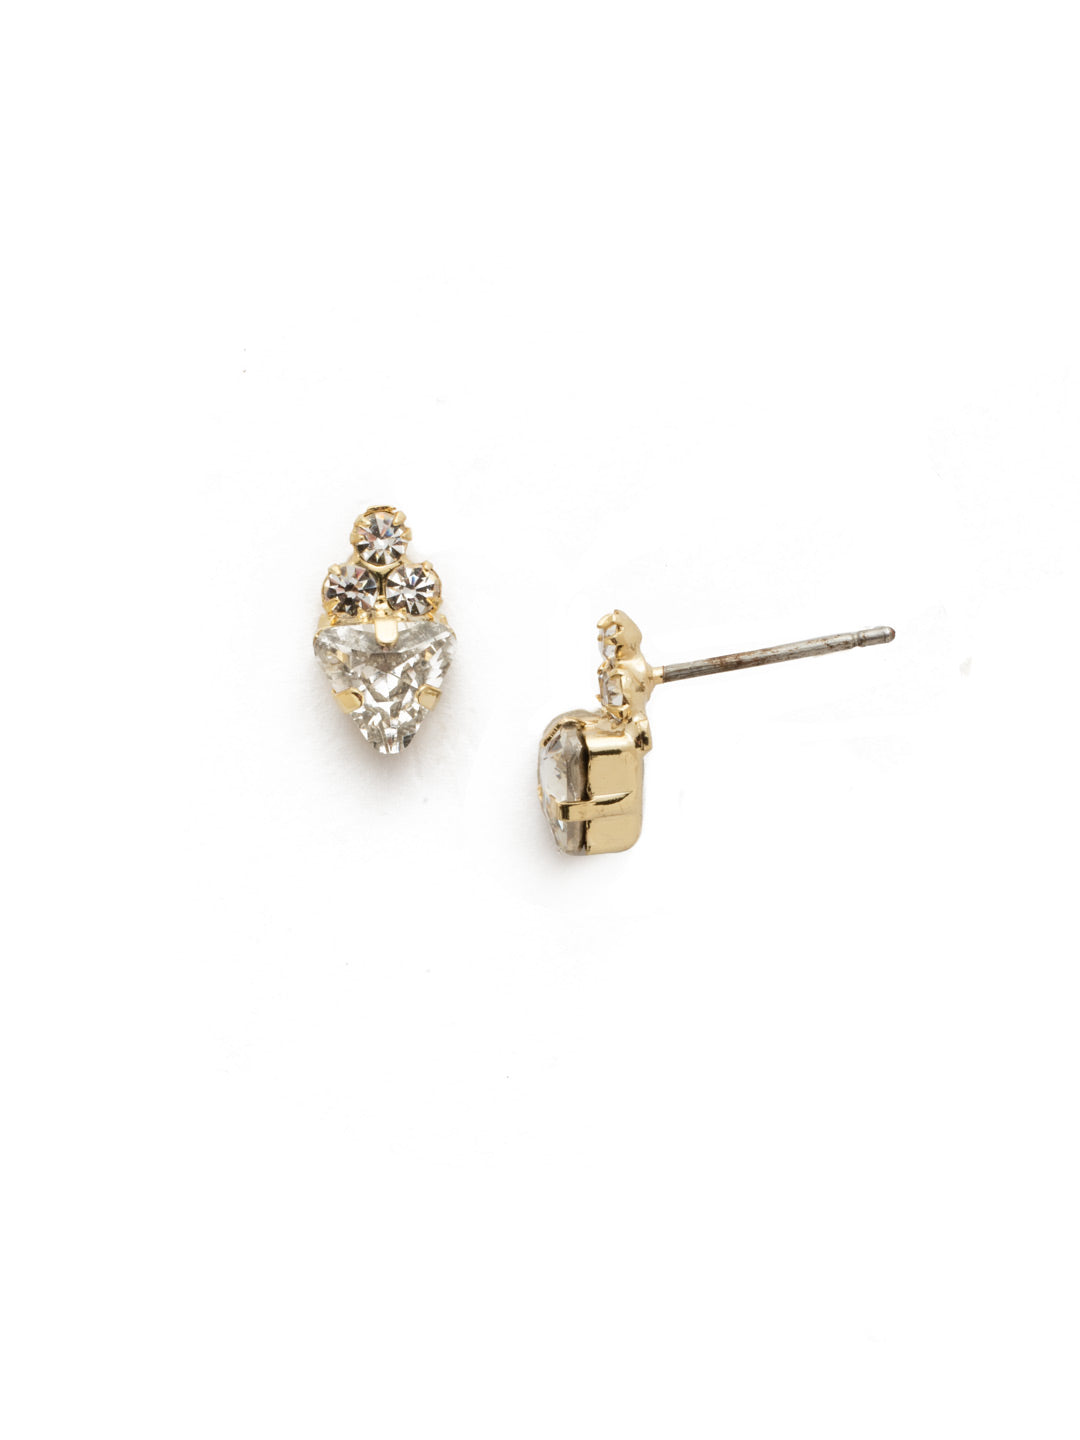 Alpine Crystal Stud Earrings - 4EEK14BGCRY